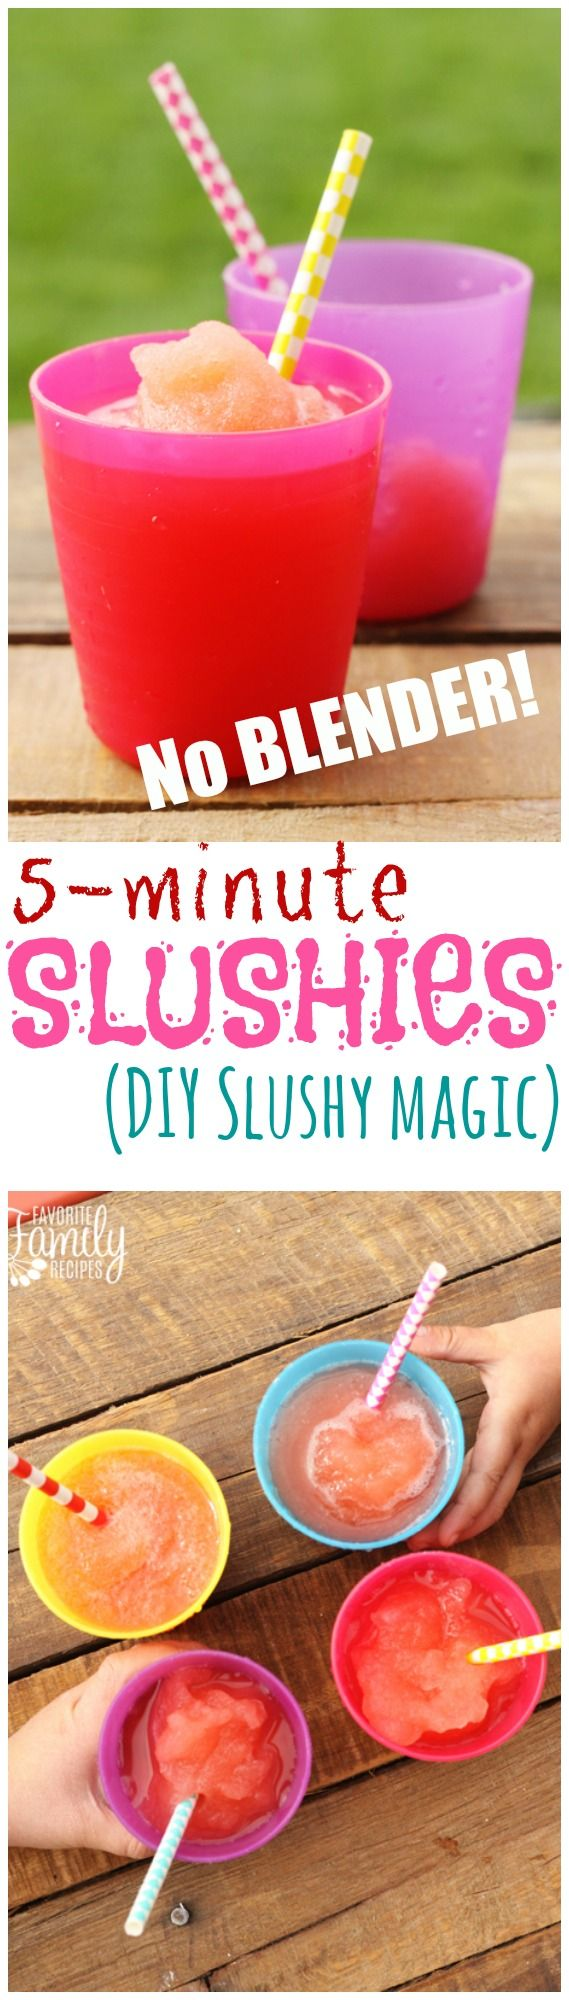 These Slushys Really Do Only Take 5 Minutes My Kids Had A Blast